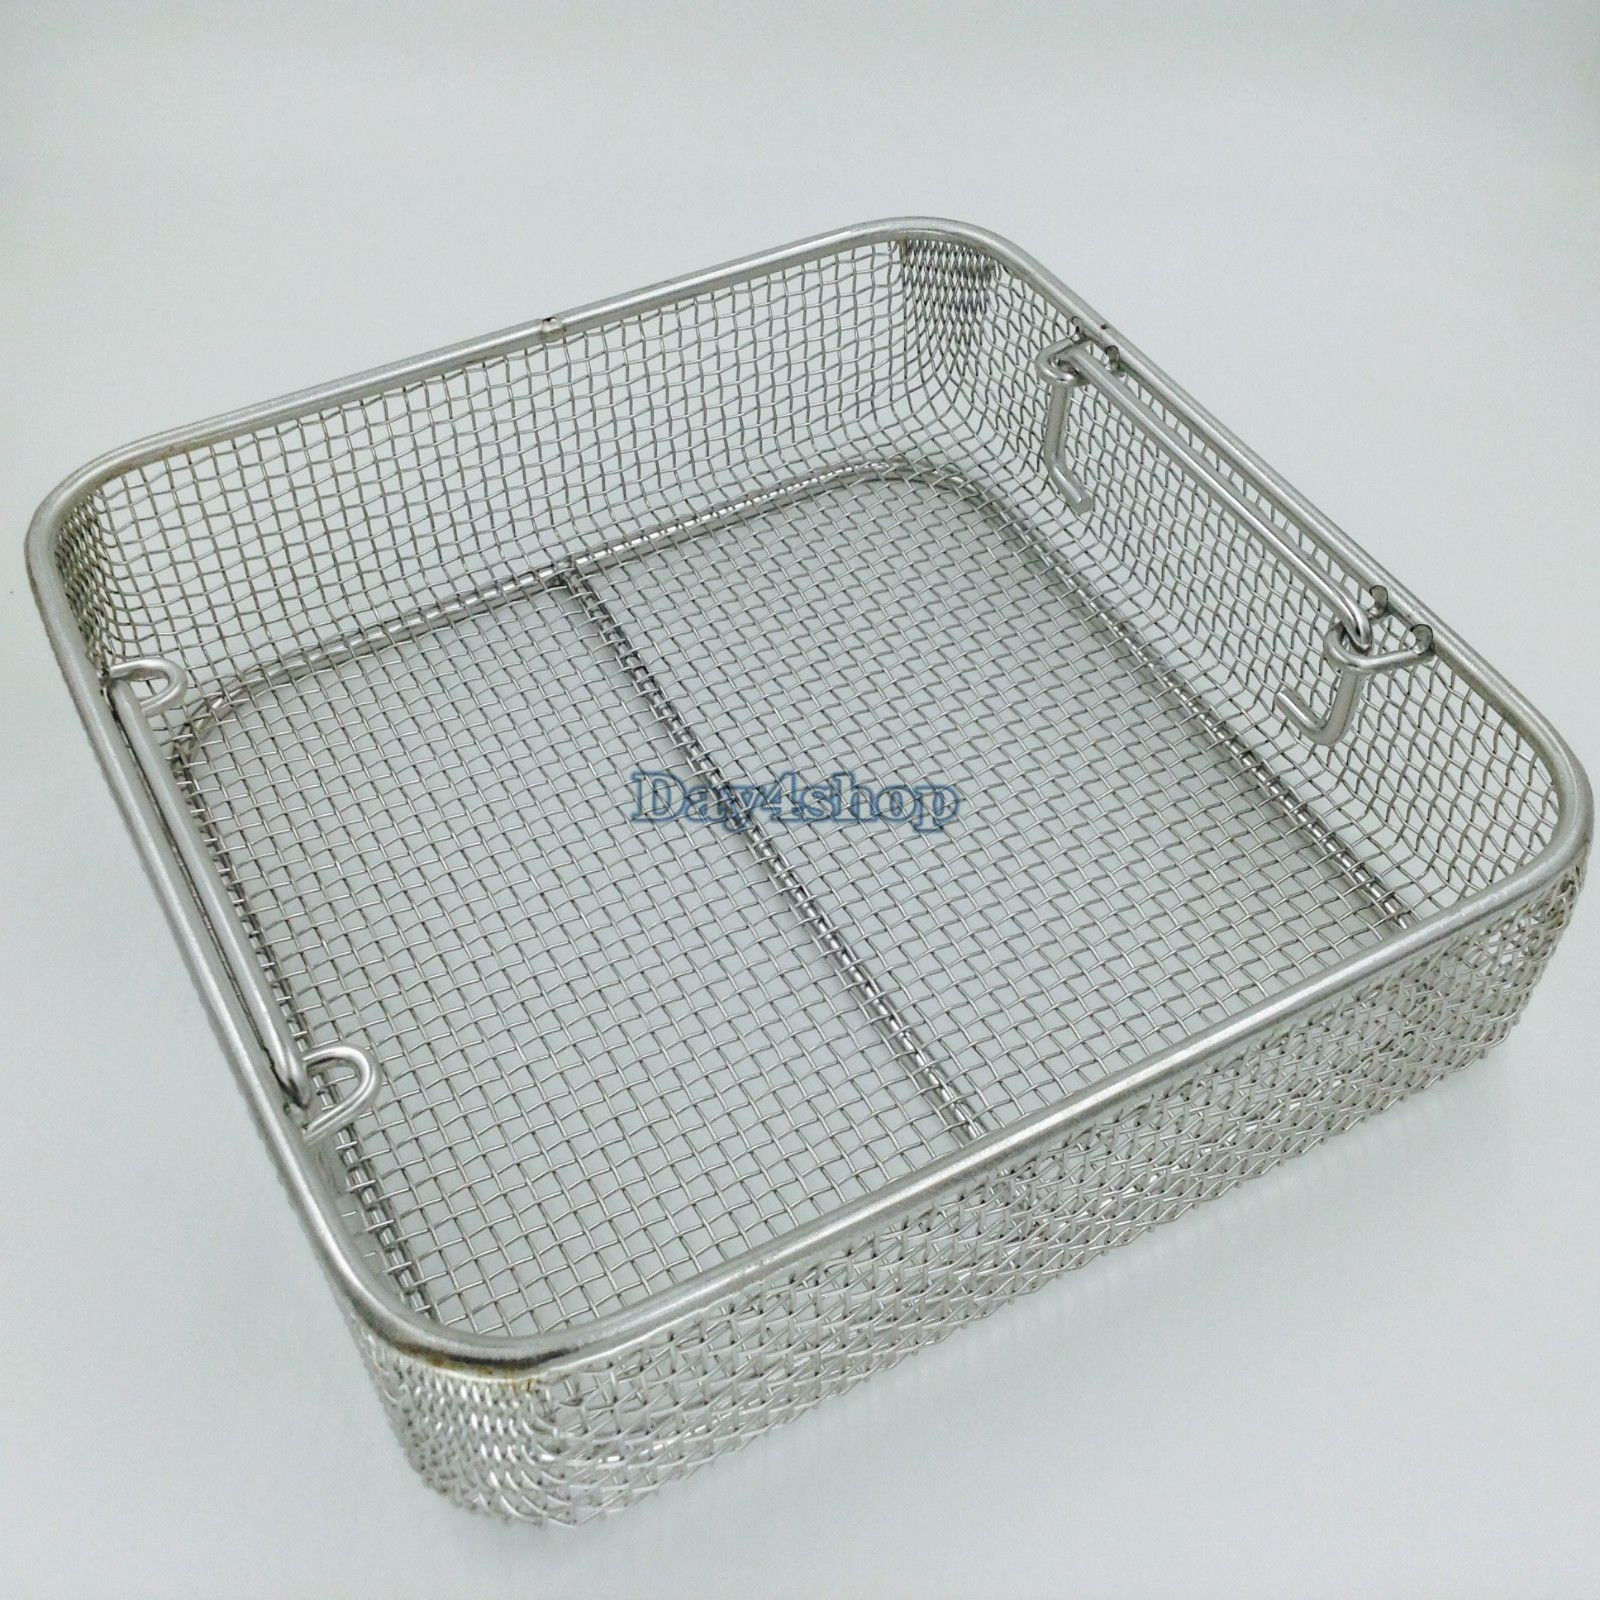 New Stainless steel sterilization tray case box surgical instrument tool